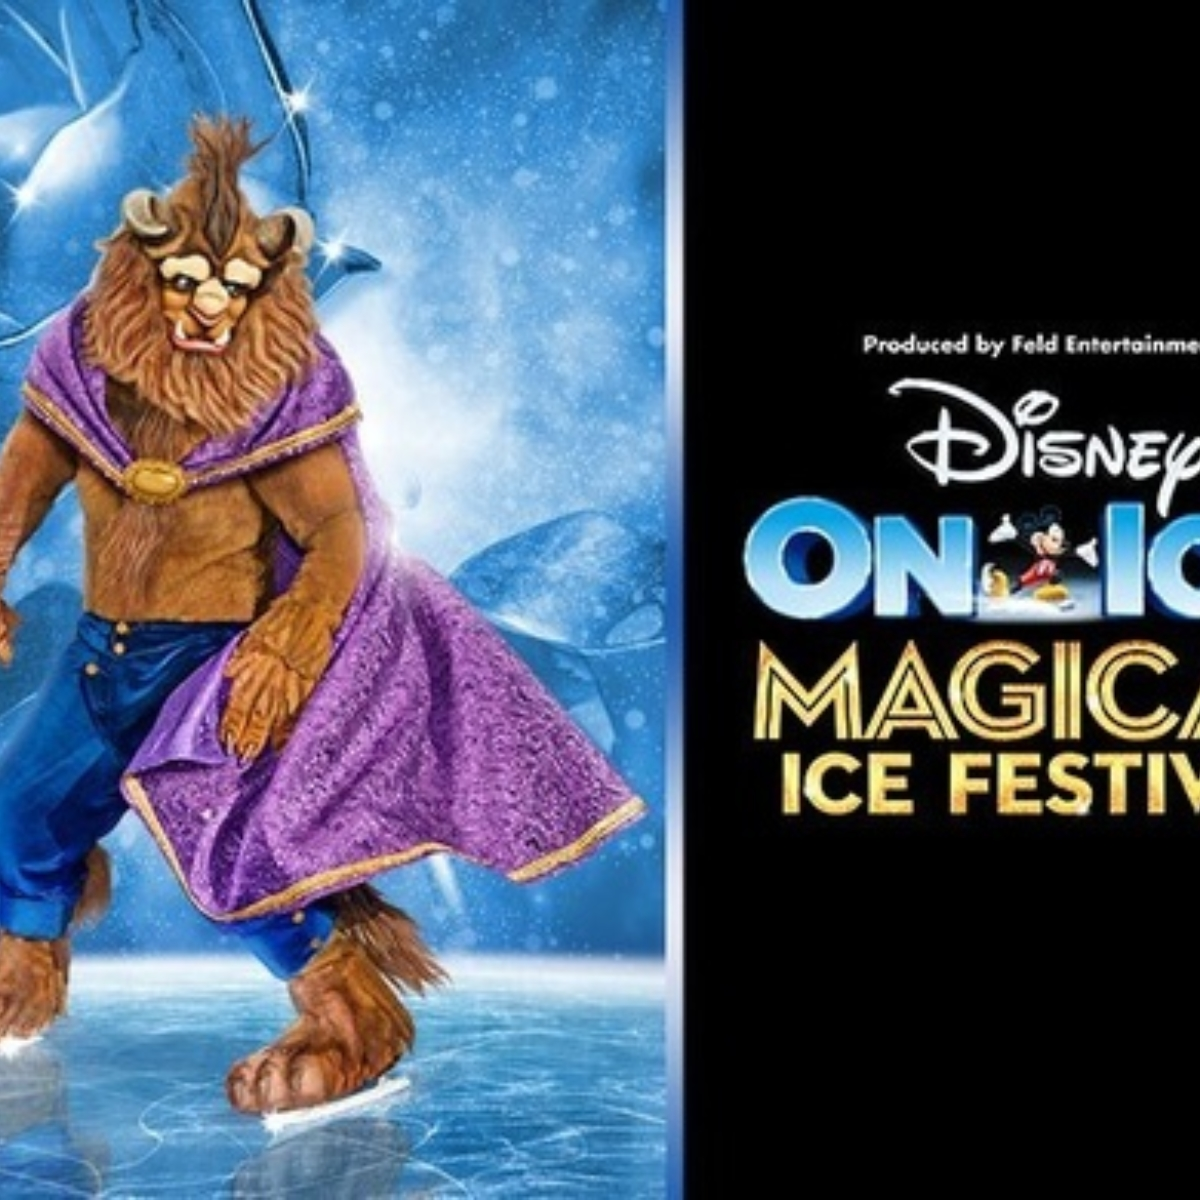 Disney On Ice presents Magical Ice Festival (Leeds) Images